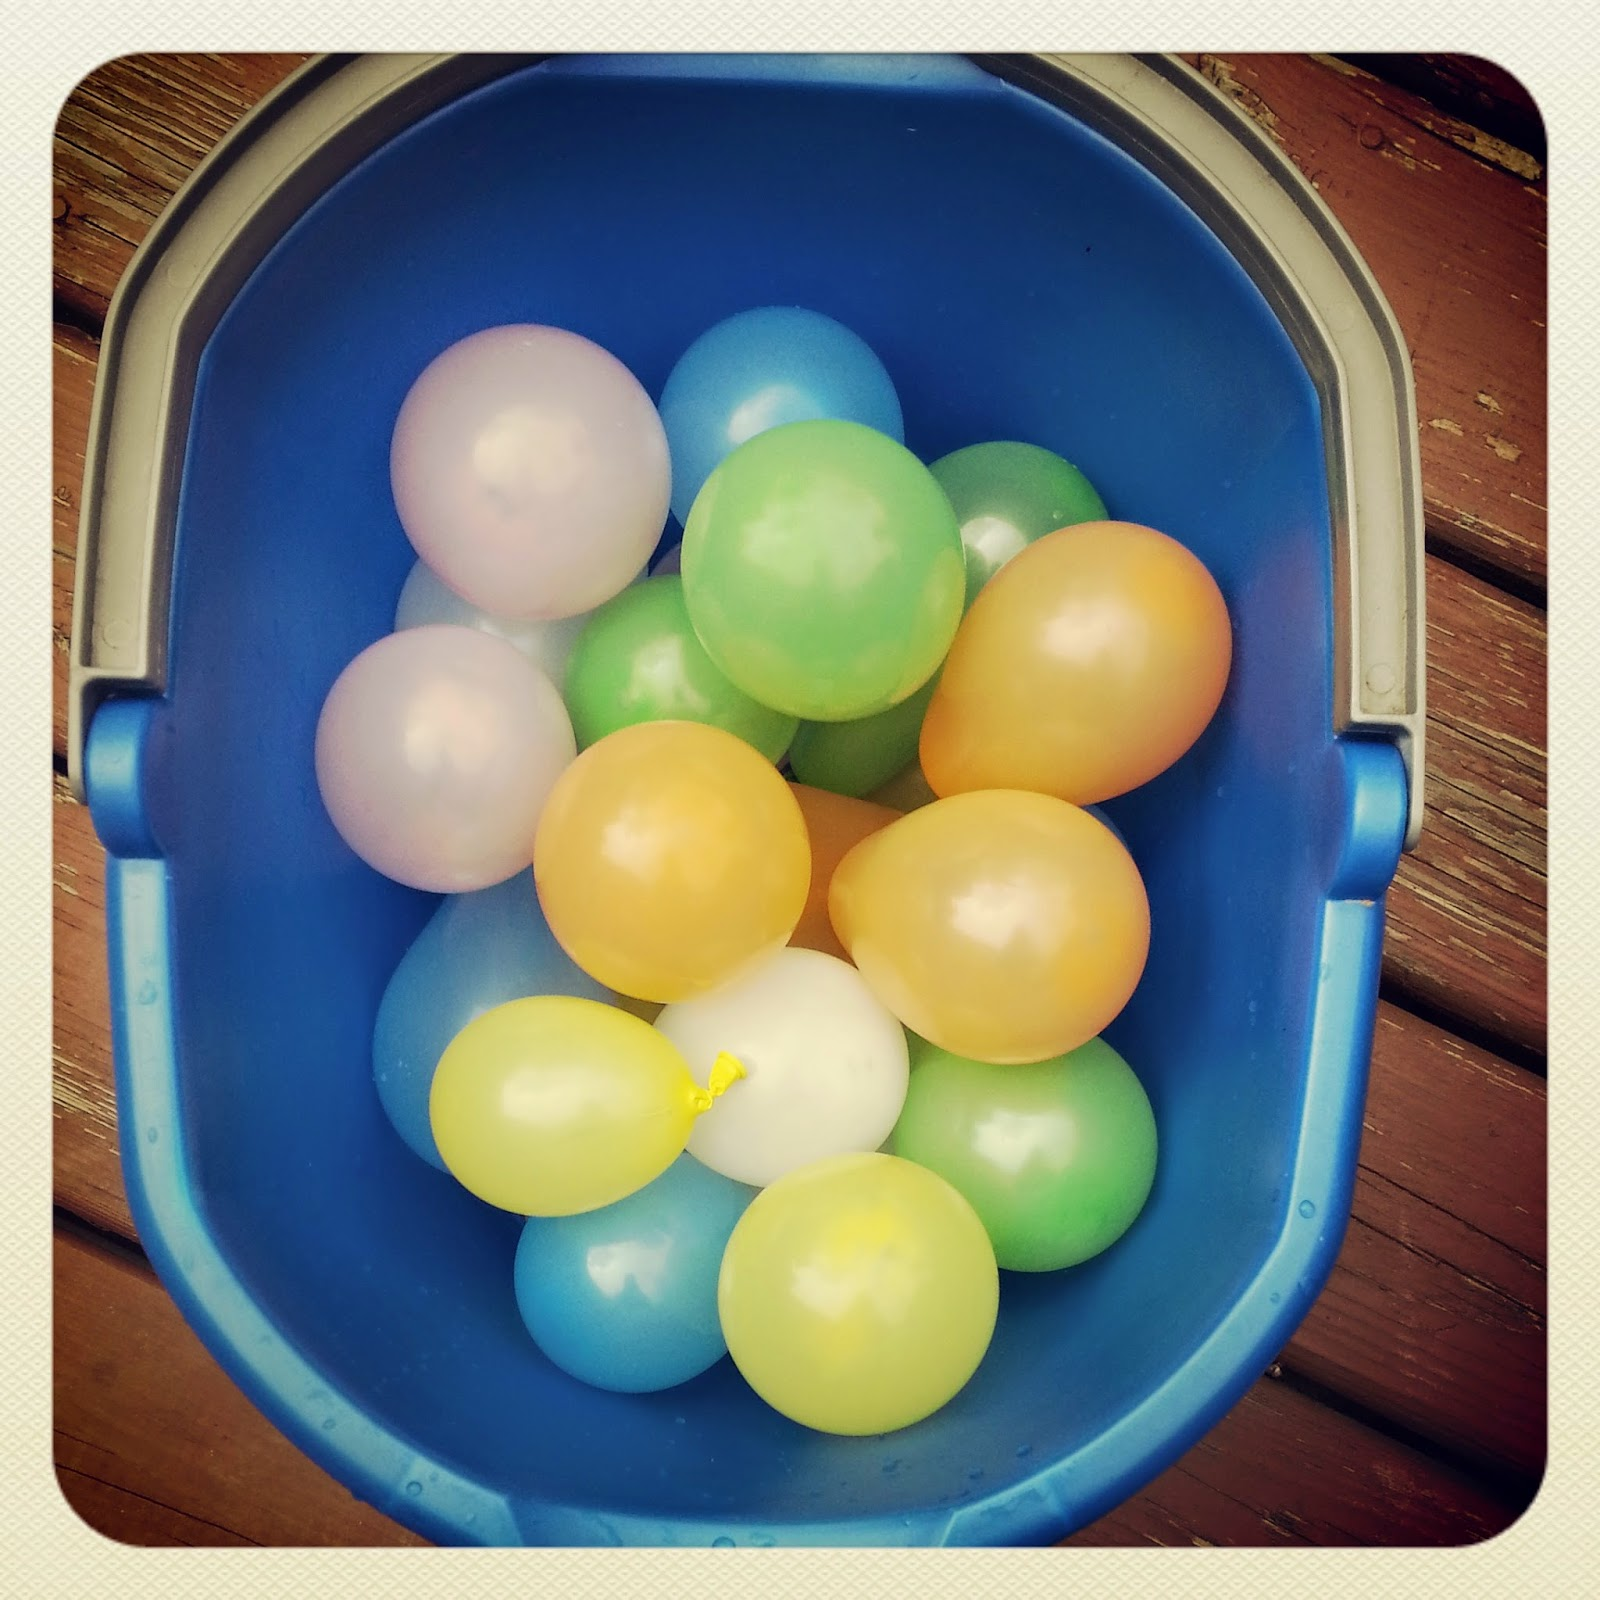 Manualidades au pair: Easter eggs